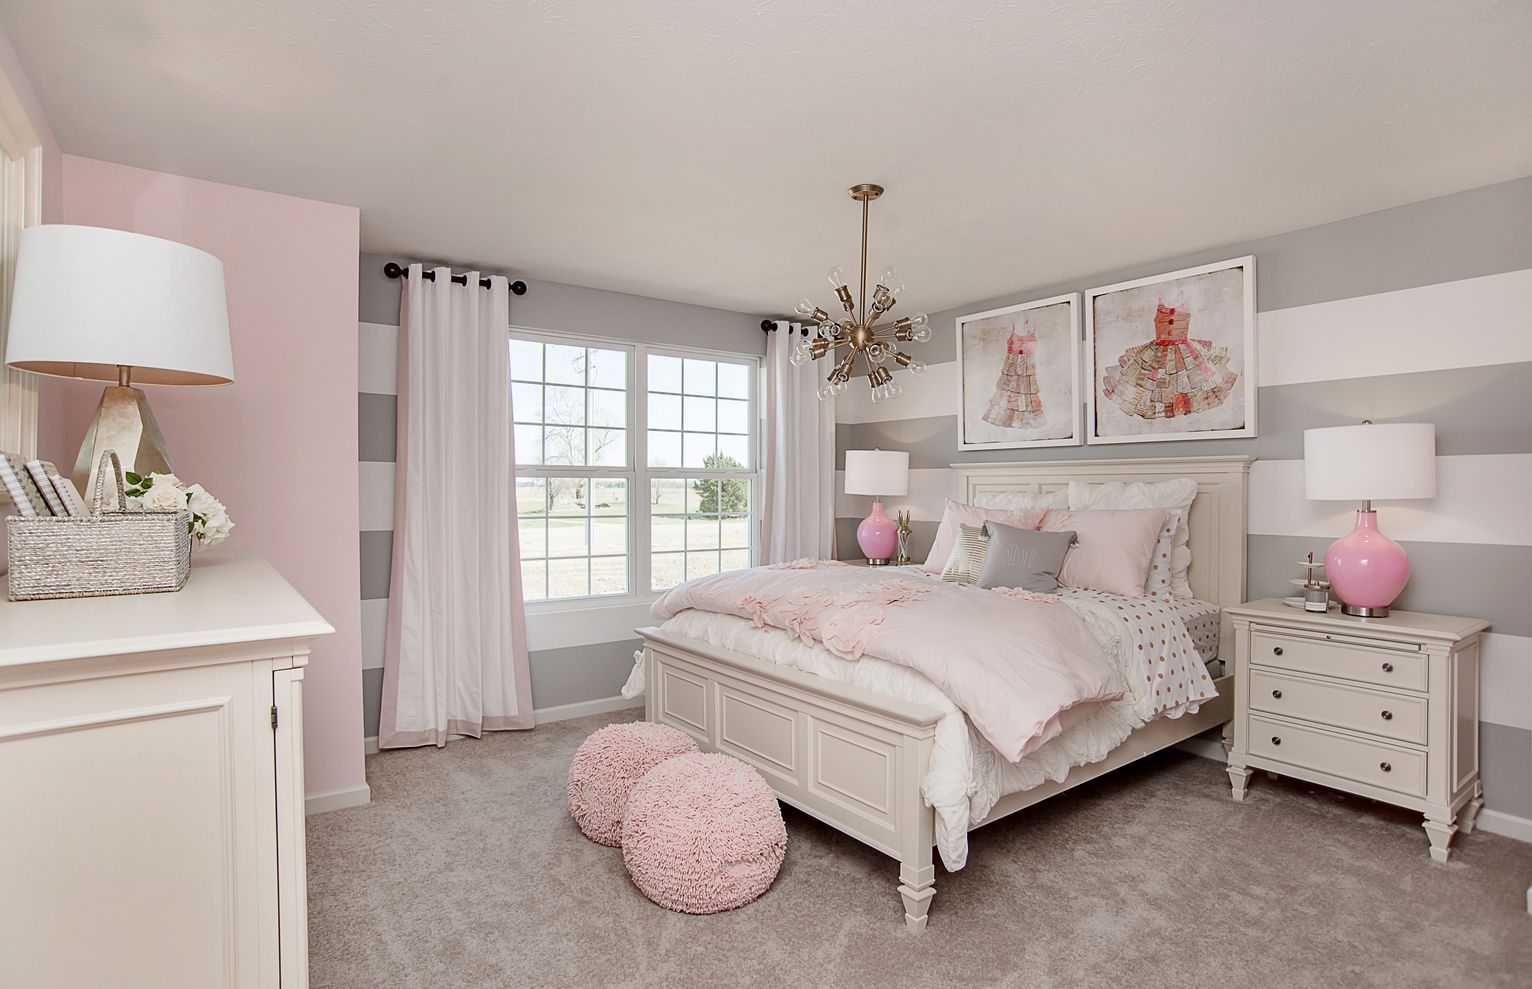 69 cute apartment bedroom ideas you will love round decor Cute kid room ideas